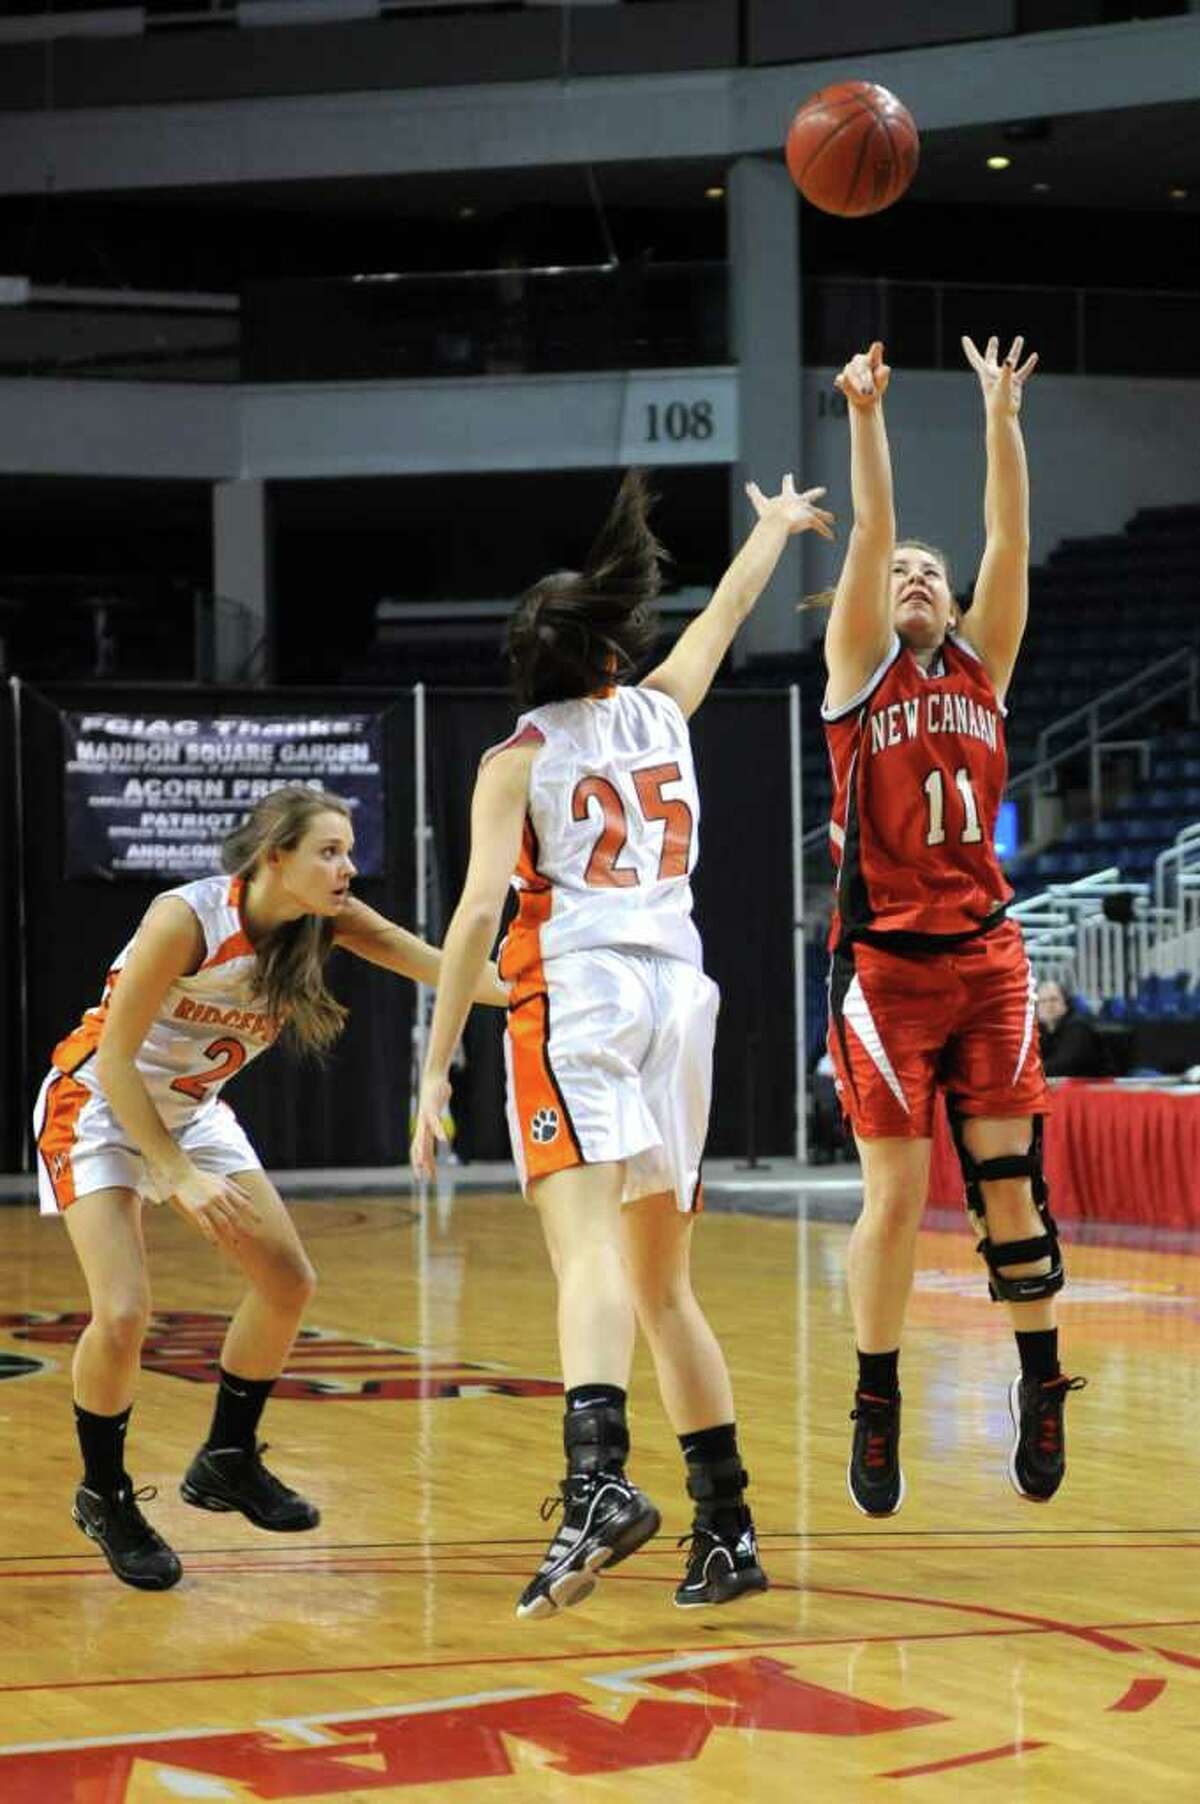 New Canaan's Courtney Rogers takes a shot as Ridgefield's Molly Welch, center, and Lauren Eckstrom, left, defend during Tuesday's FCIAC girls basketball semifinal game at the Webster Bank Arena at Harbor Yard on Feburary 22, 2011.